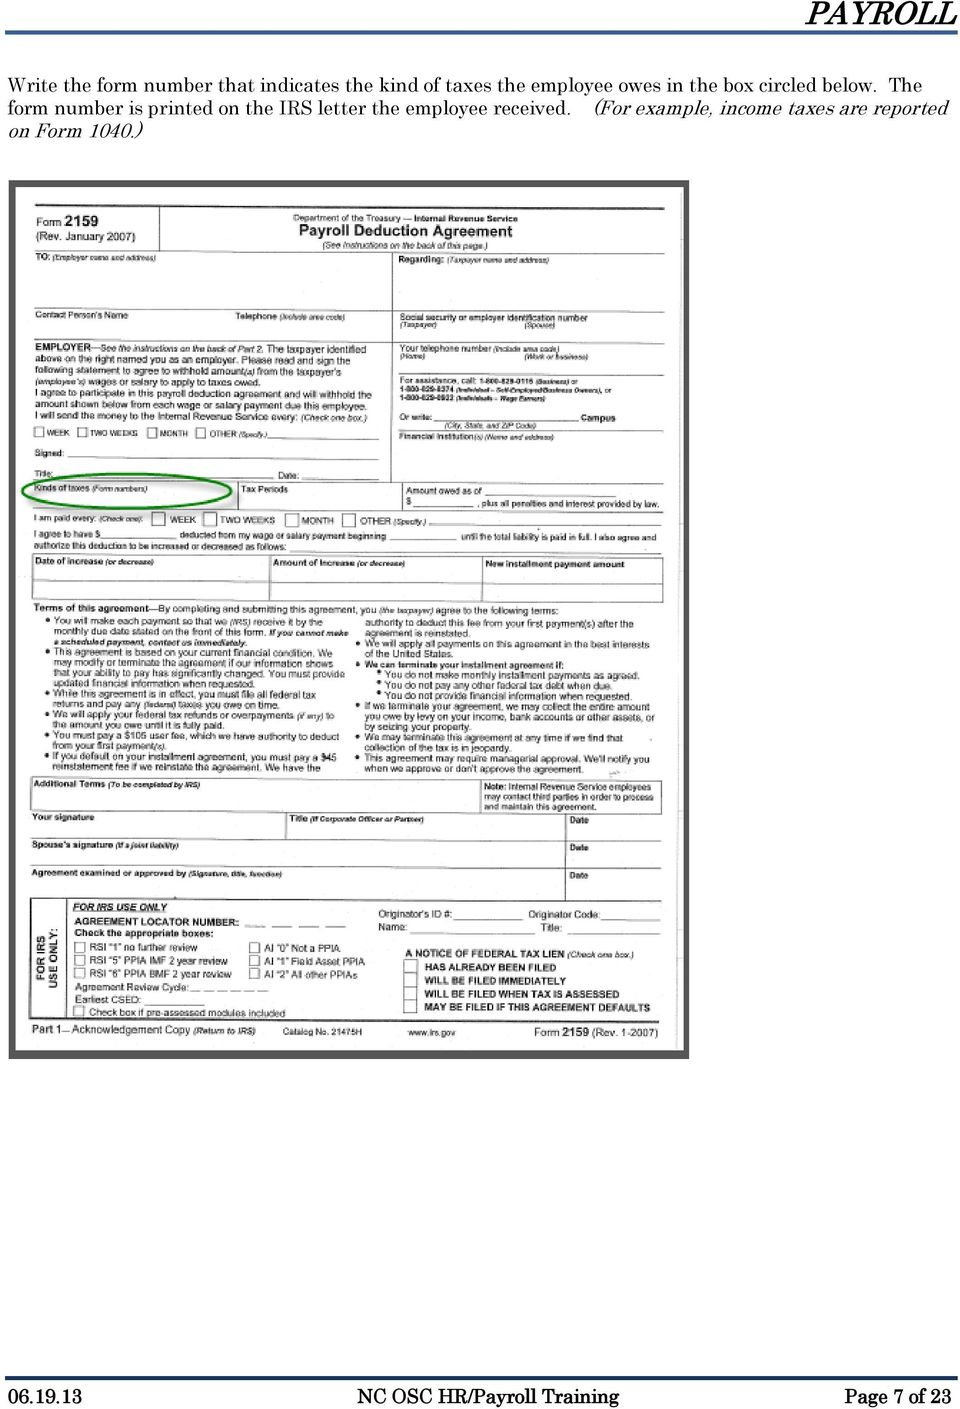 The form number is printed on the IRS letter the employee received.